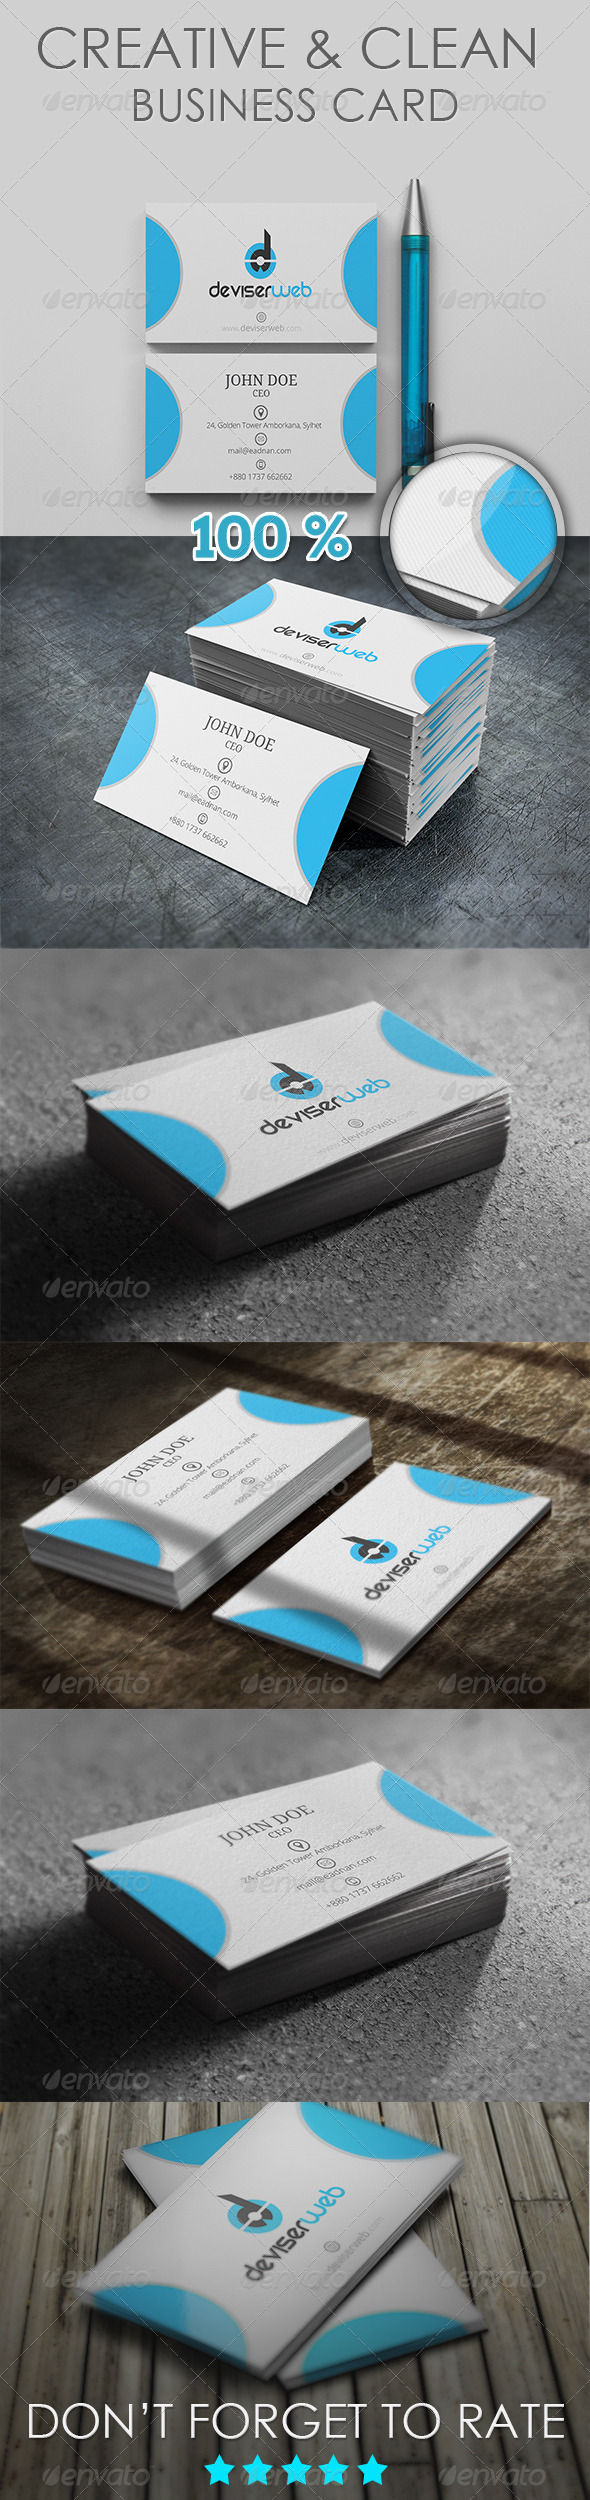 GraphicRiver Creative & Clean Business Card 5059529